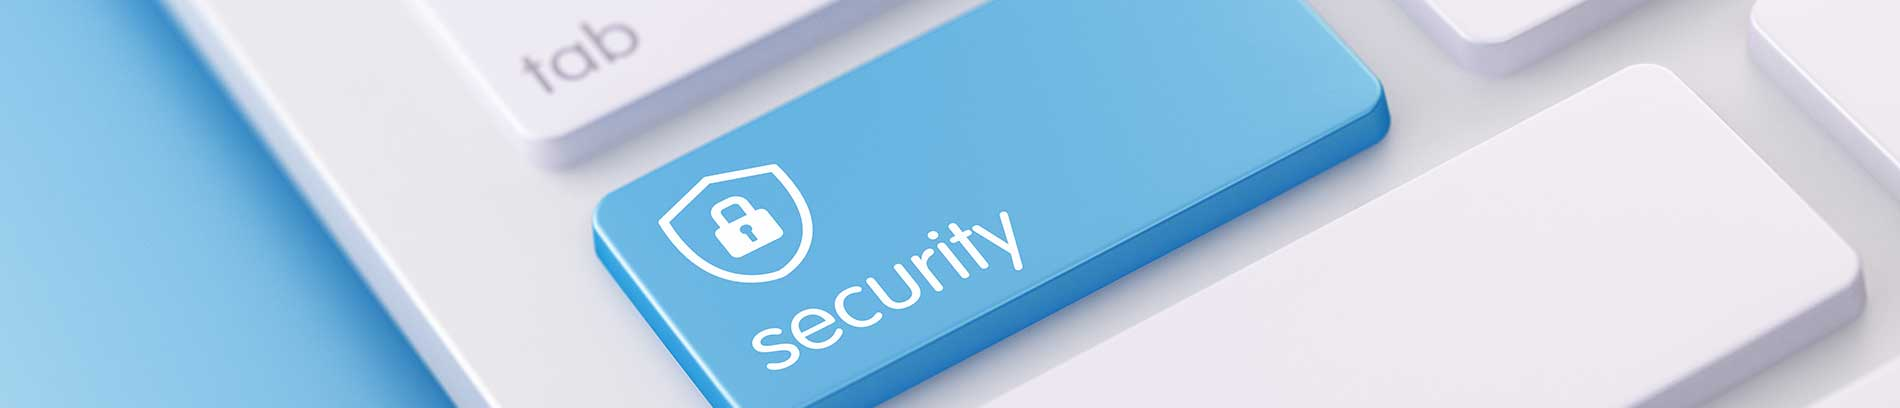 Cyber Security Button on Keyboard